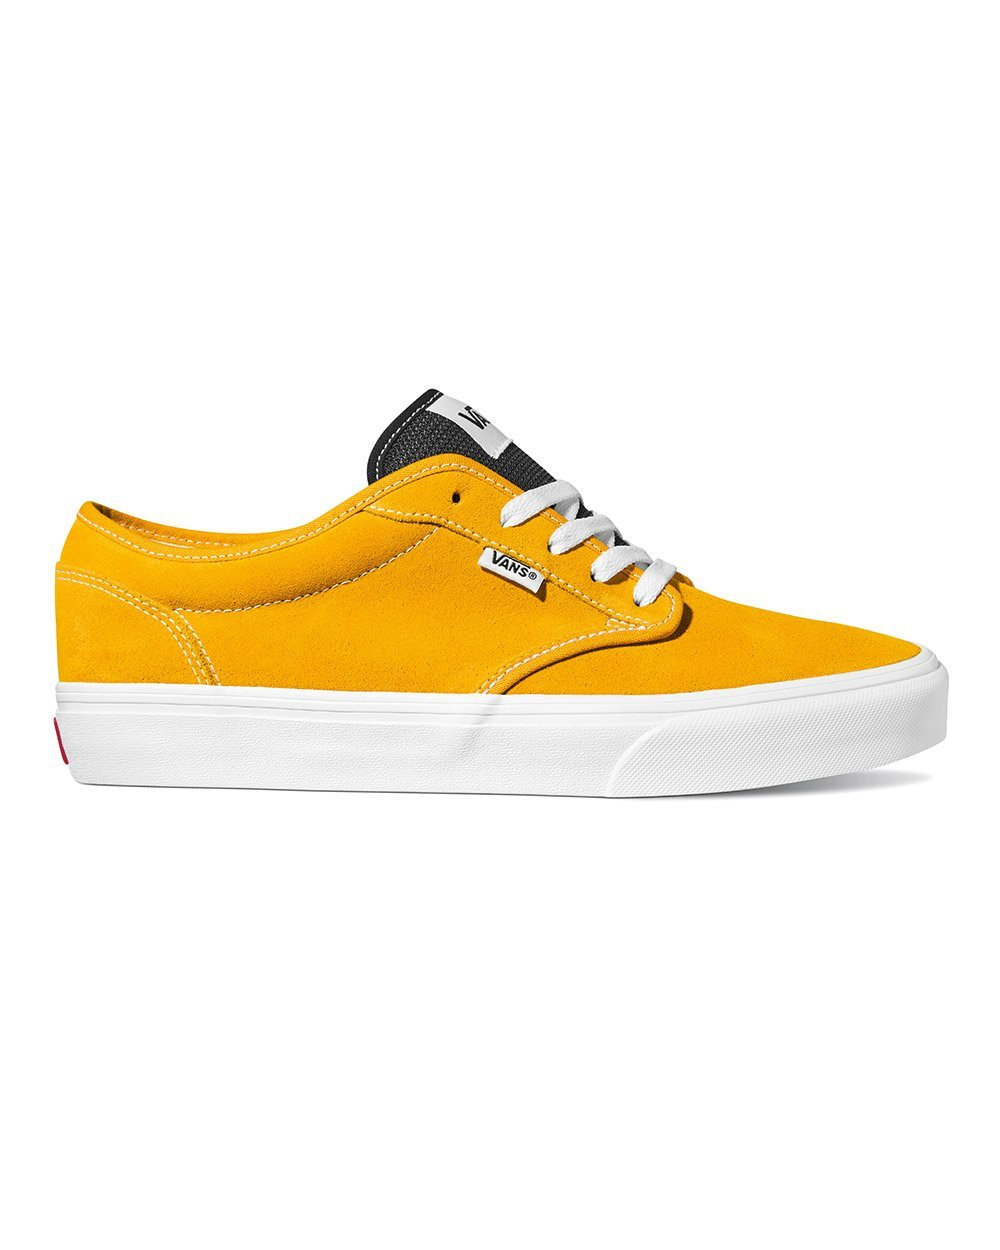 Vans Men's Atwood Retro Sport - Cadmium Yellow/White SP-Footwear-Mens Vans